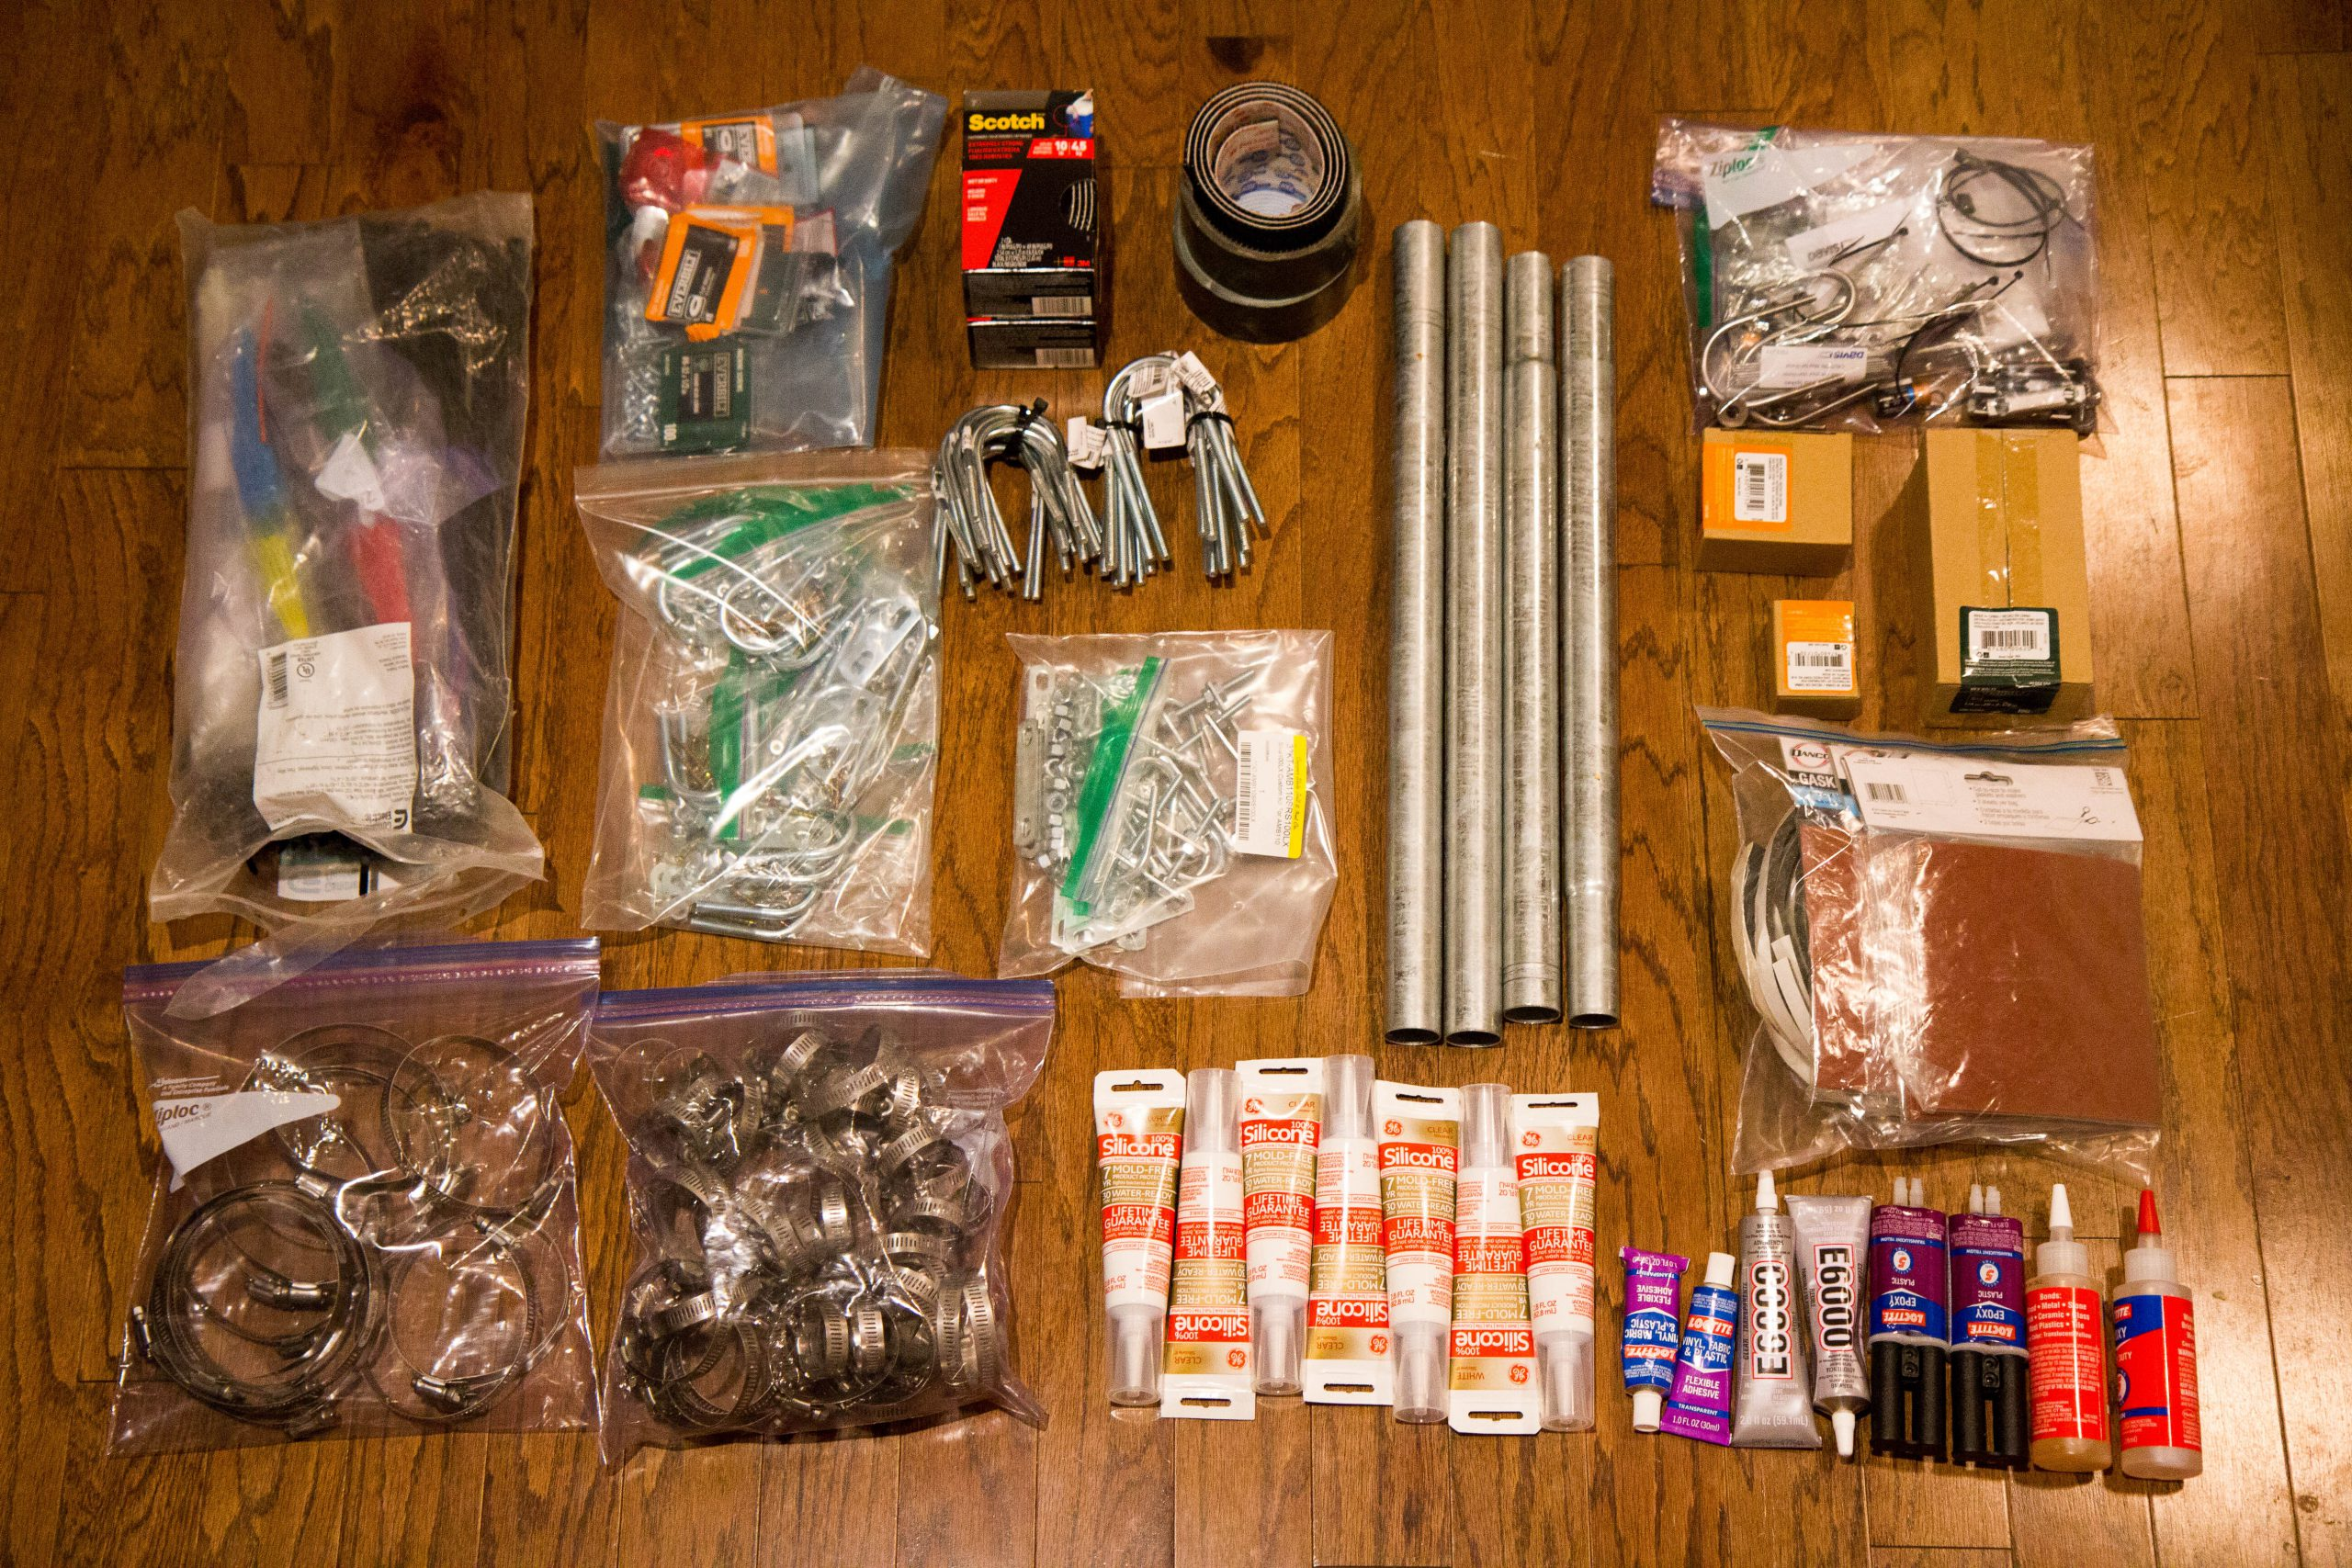 A small selection of items included in a FieldKit team member's gear bag